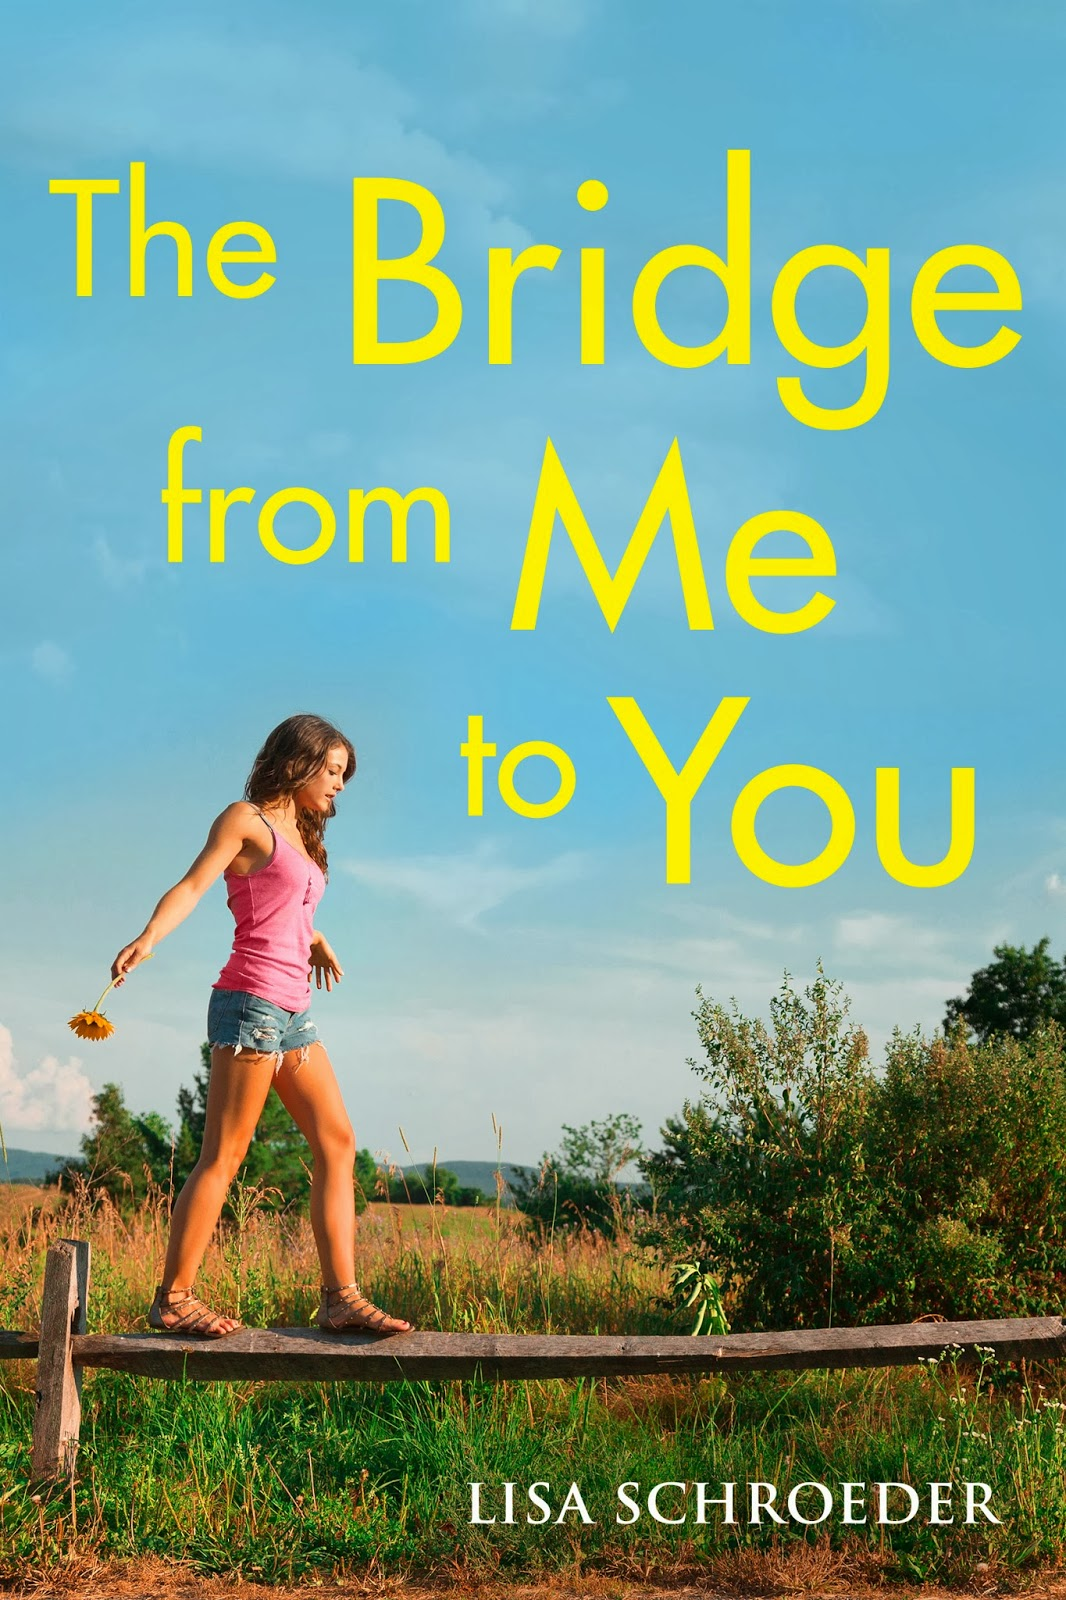 The Bridge from You to Me by Lisa Schroeder